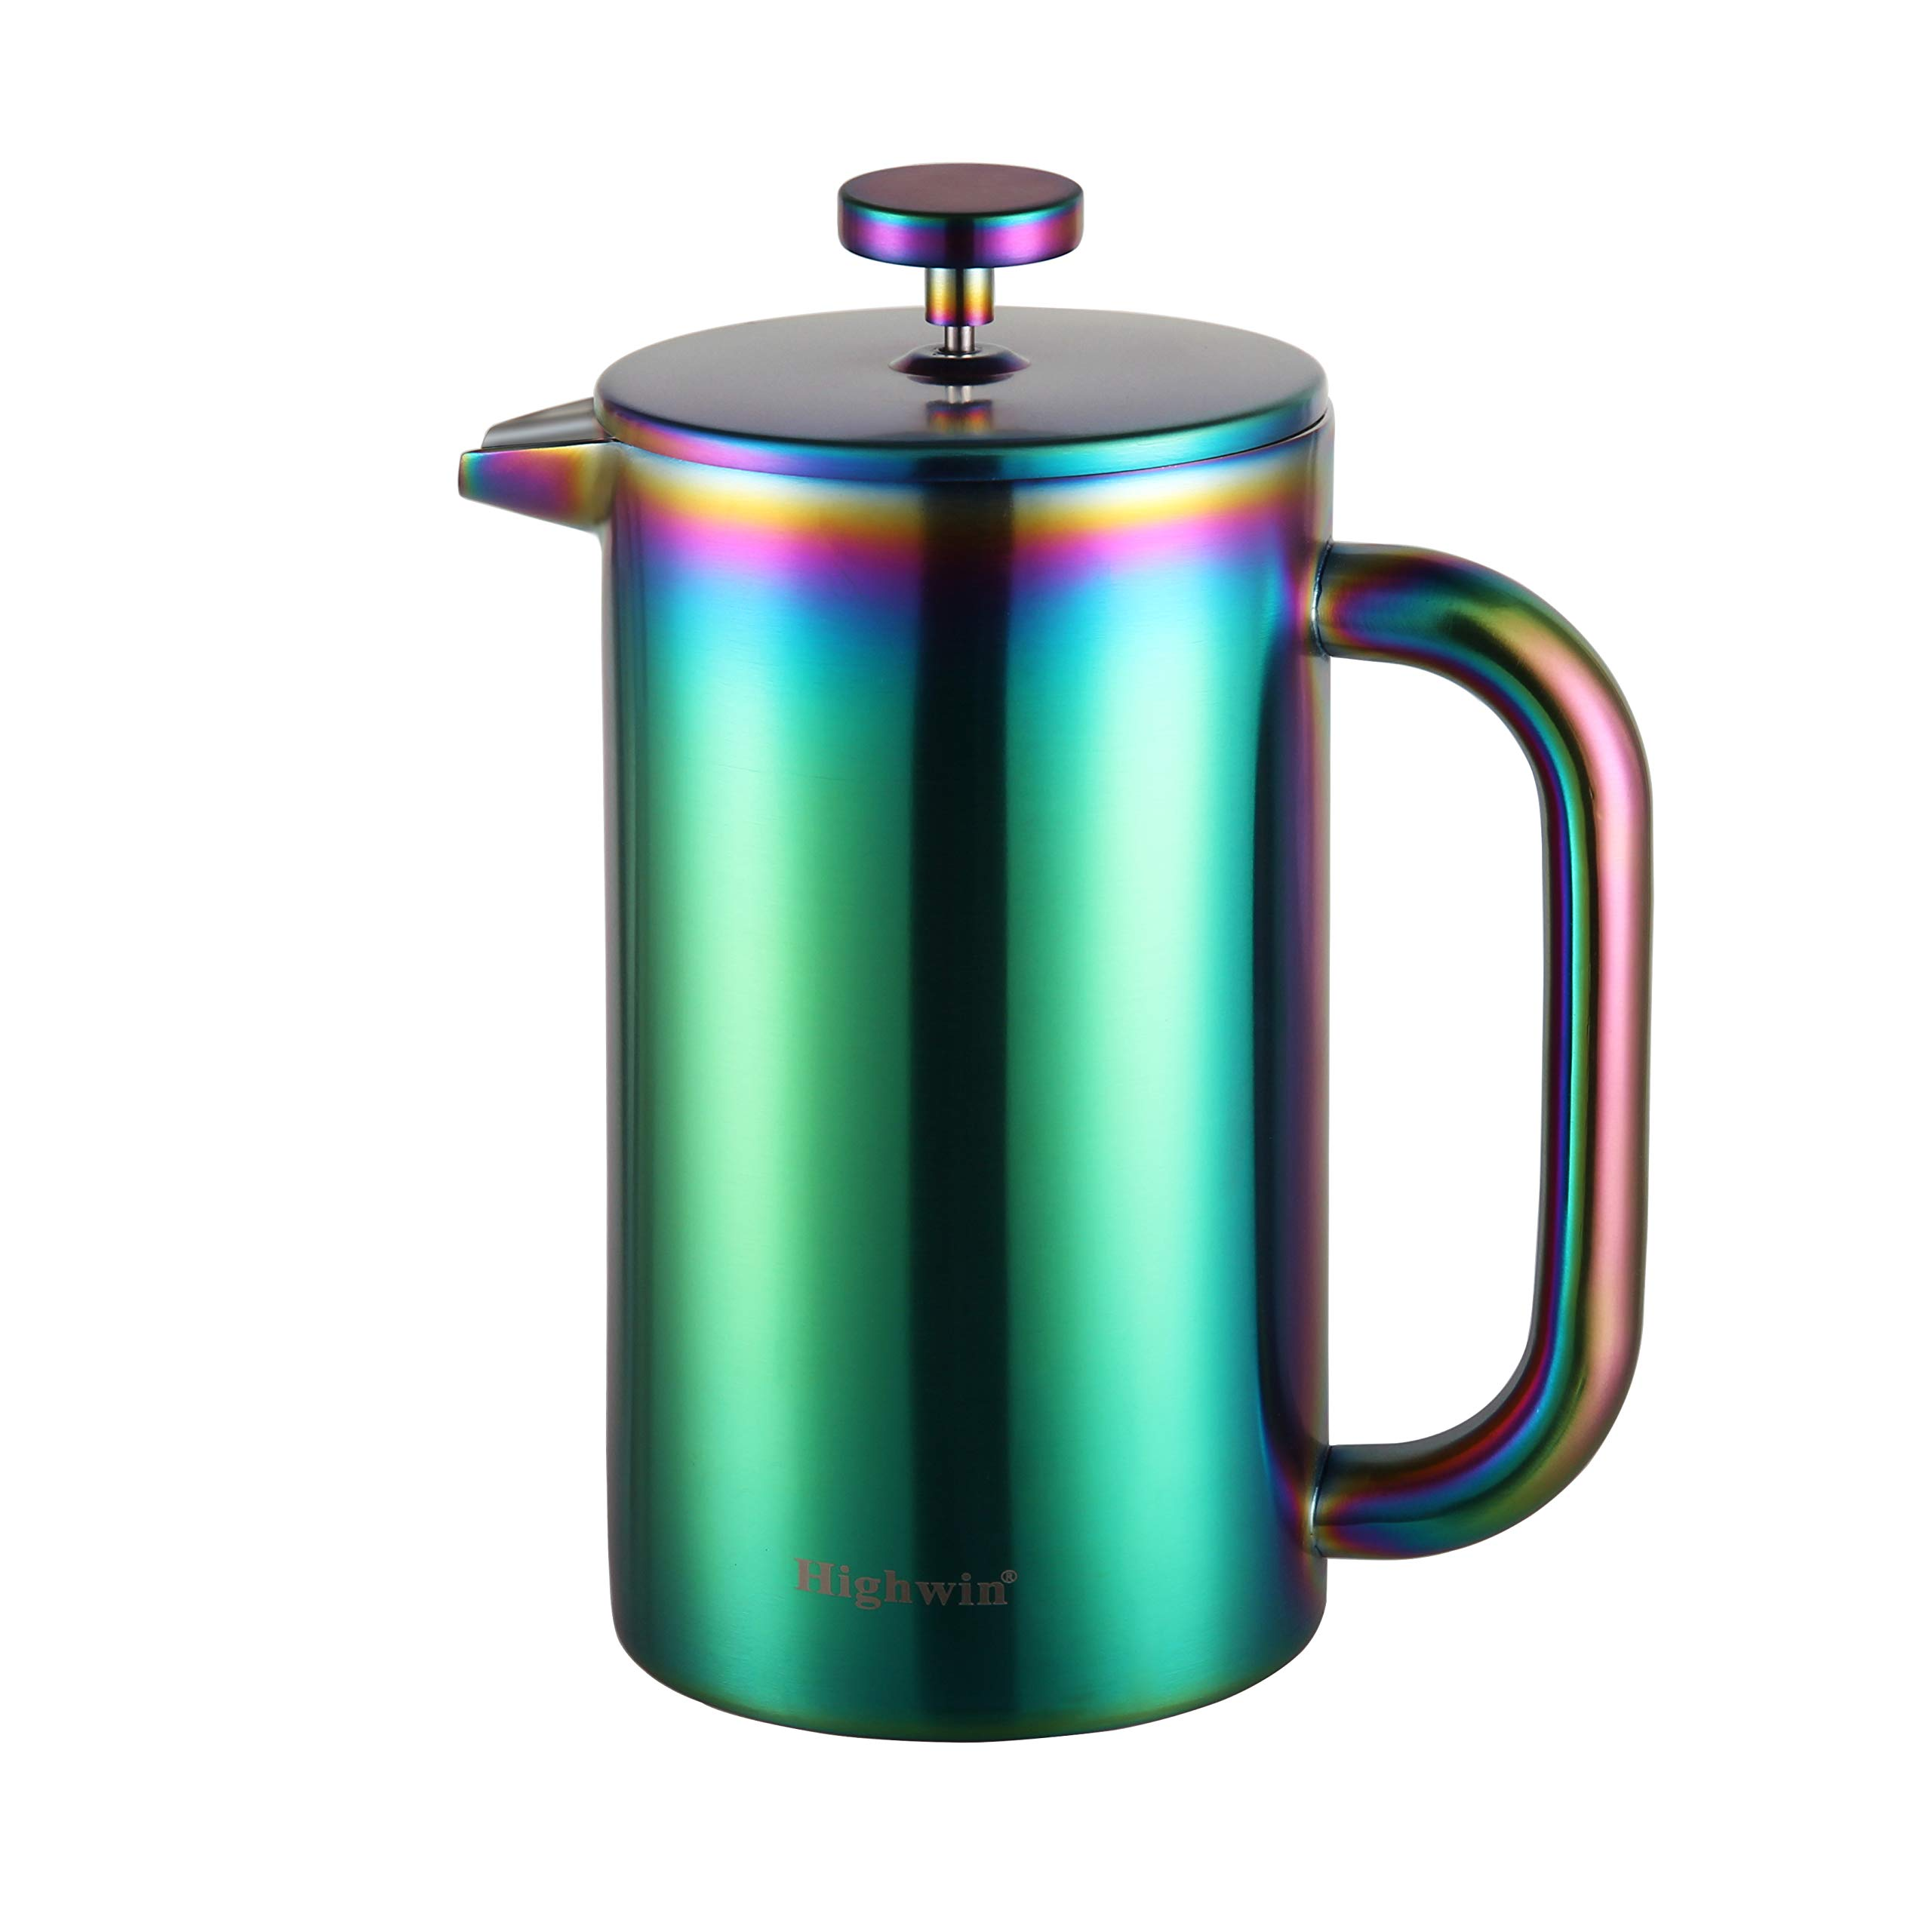 Highwin 8-Cup Double Wall Insulated Stainless Steel French Coffee Press, 34-Ounce Durable Coffee Tea Maker with Stainless Steel Plunger, Rainbow